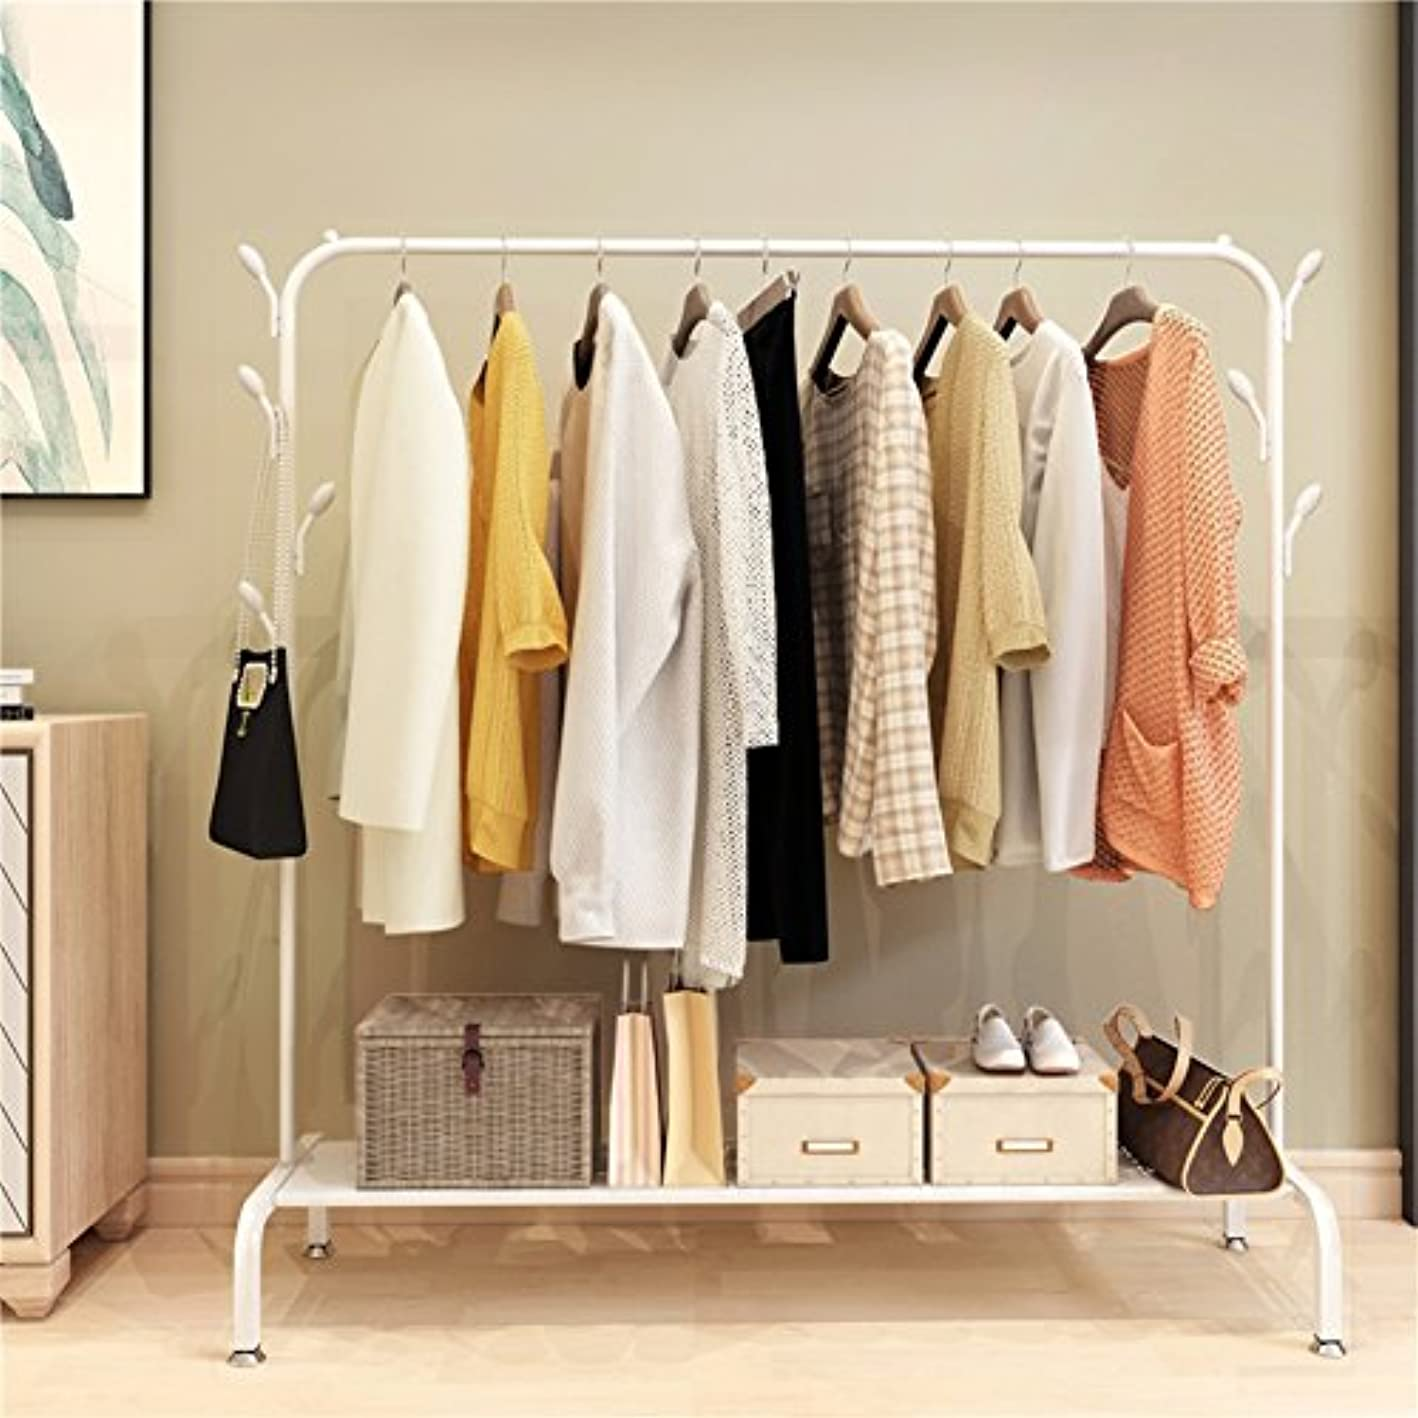 lililili Clothing garment rack heavy duty commercial grade clothes stand rack with top rod and lower storage shelf for boxes shoes boots-White 41''Lx17''Wx60''H